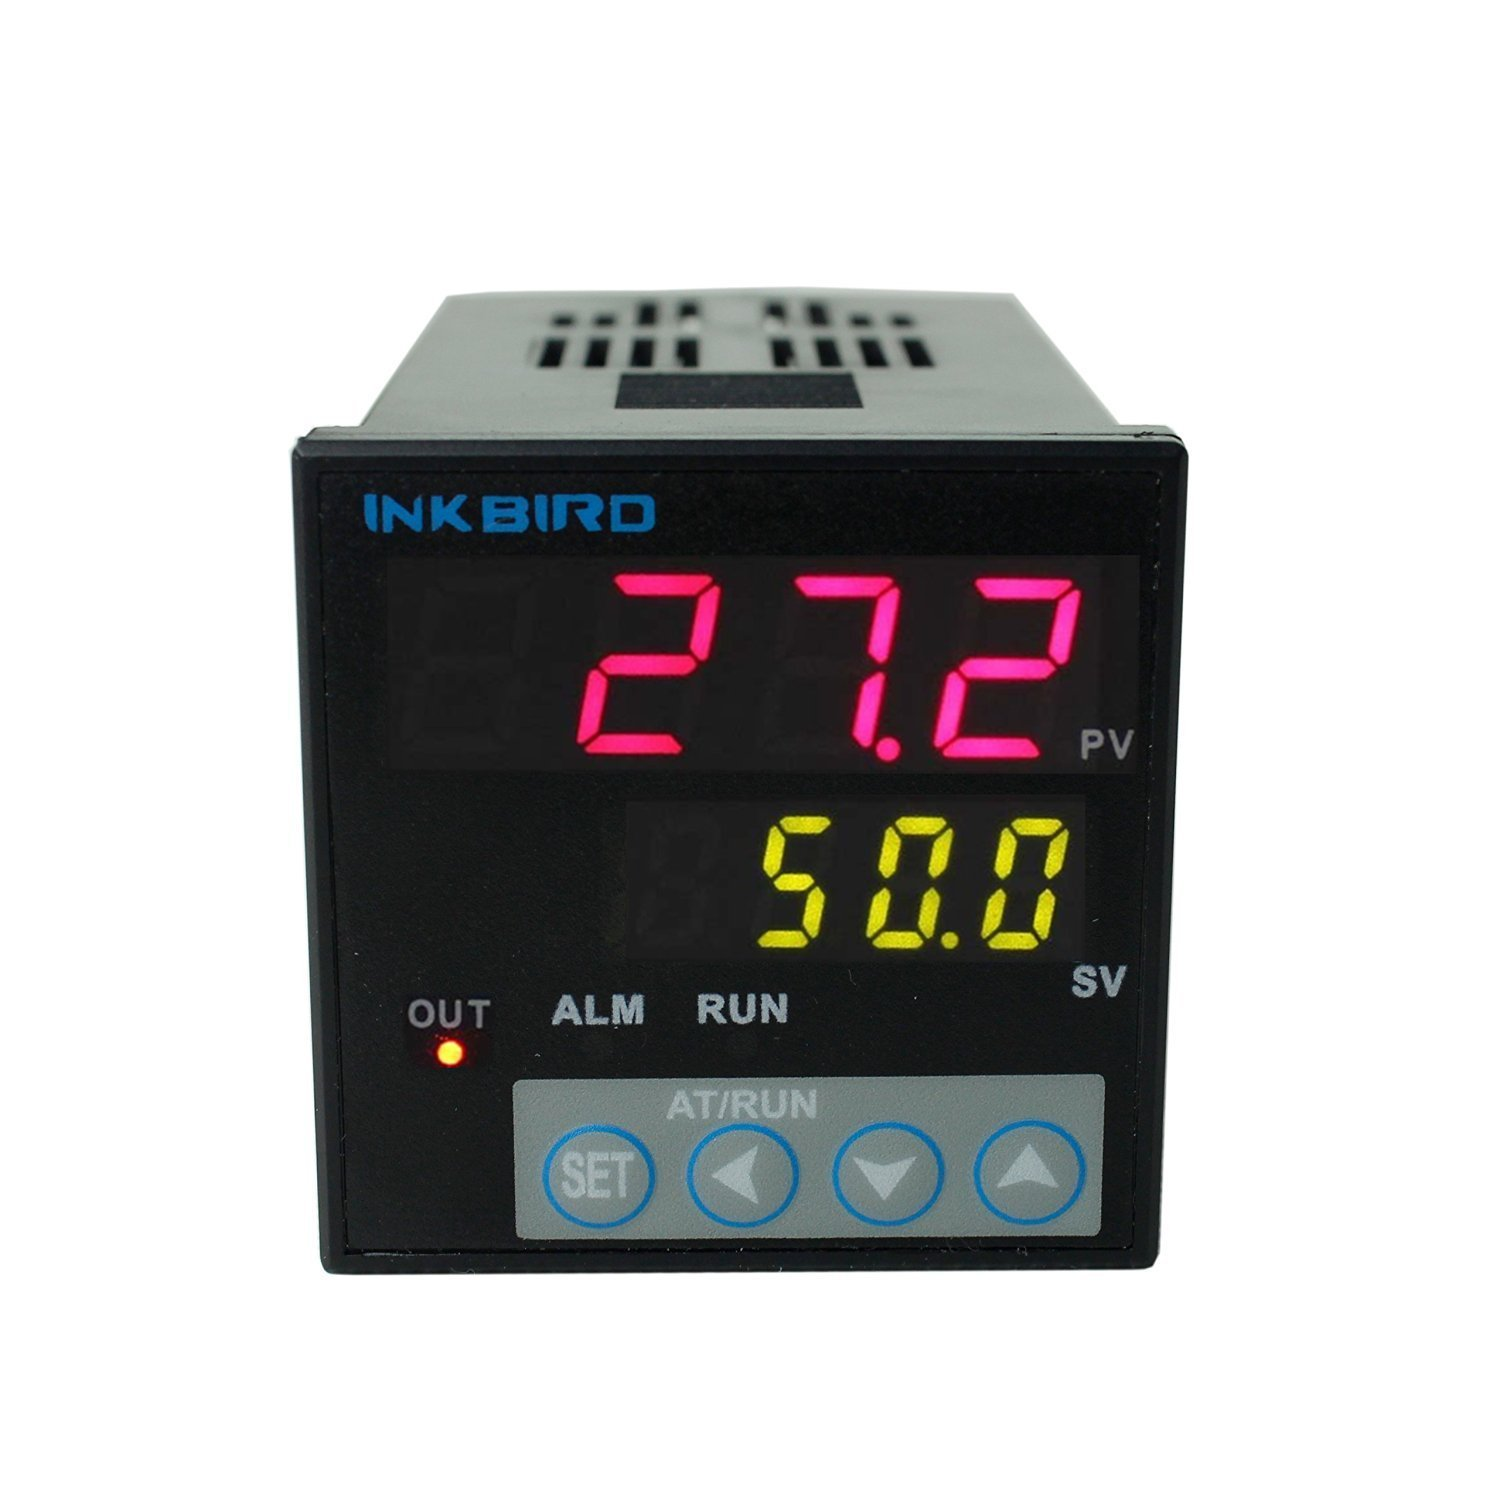 Inkbird °F and °C Display PID Stable Temperature Controller ITC-106RL Relay Output AC/DC 12-24V (ITC-106RL)